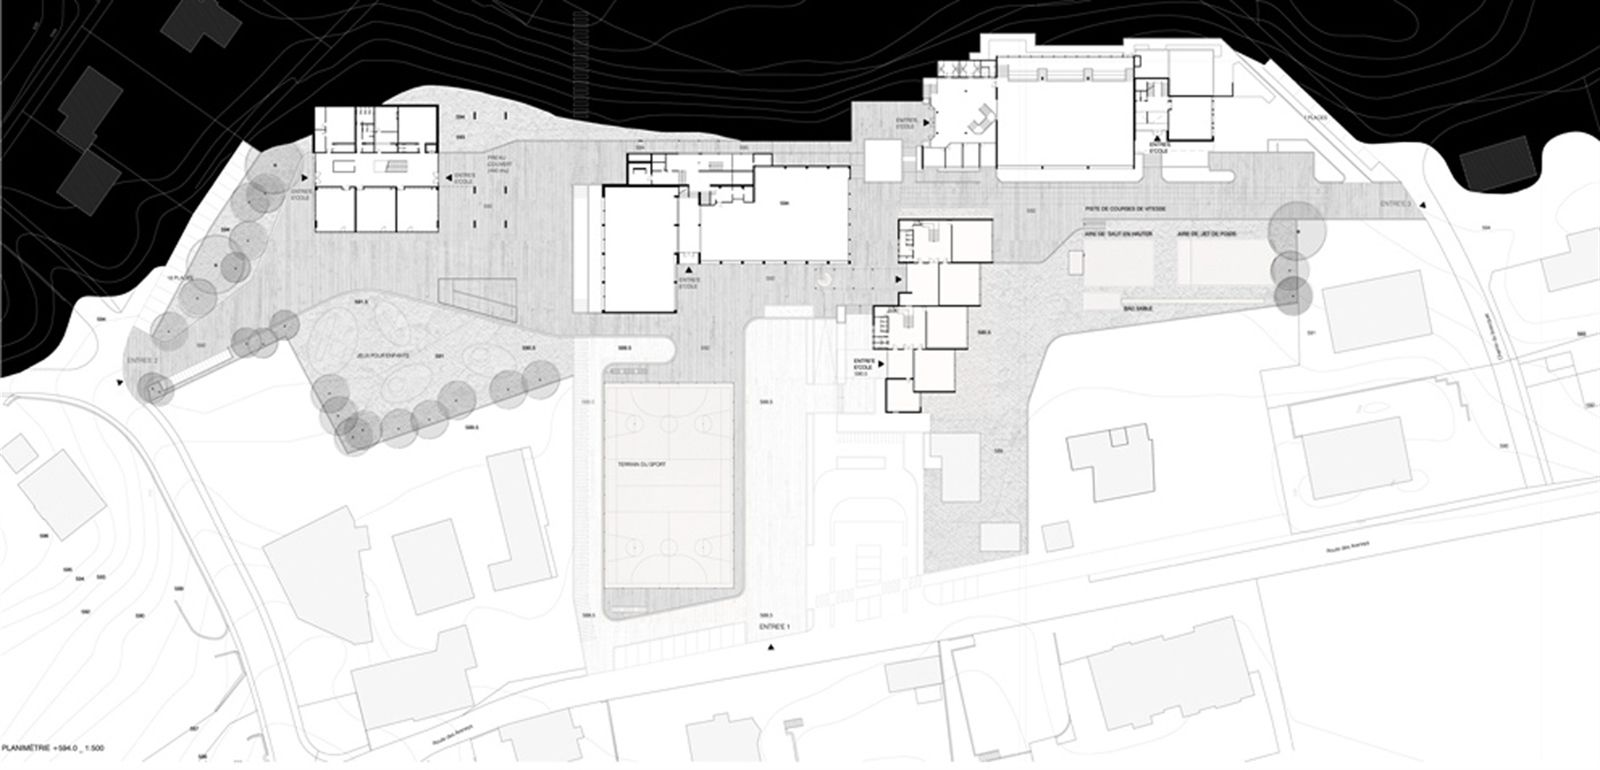 #OPERASTUDIO  #project  #architecture #international #contest #switzerland #genève #saintlegier #school #gymnasium #landscape #plan #black #drawing